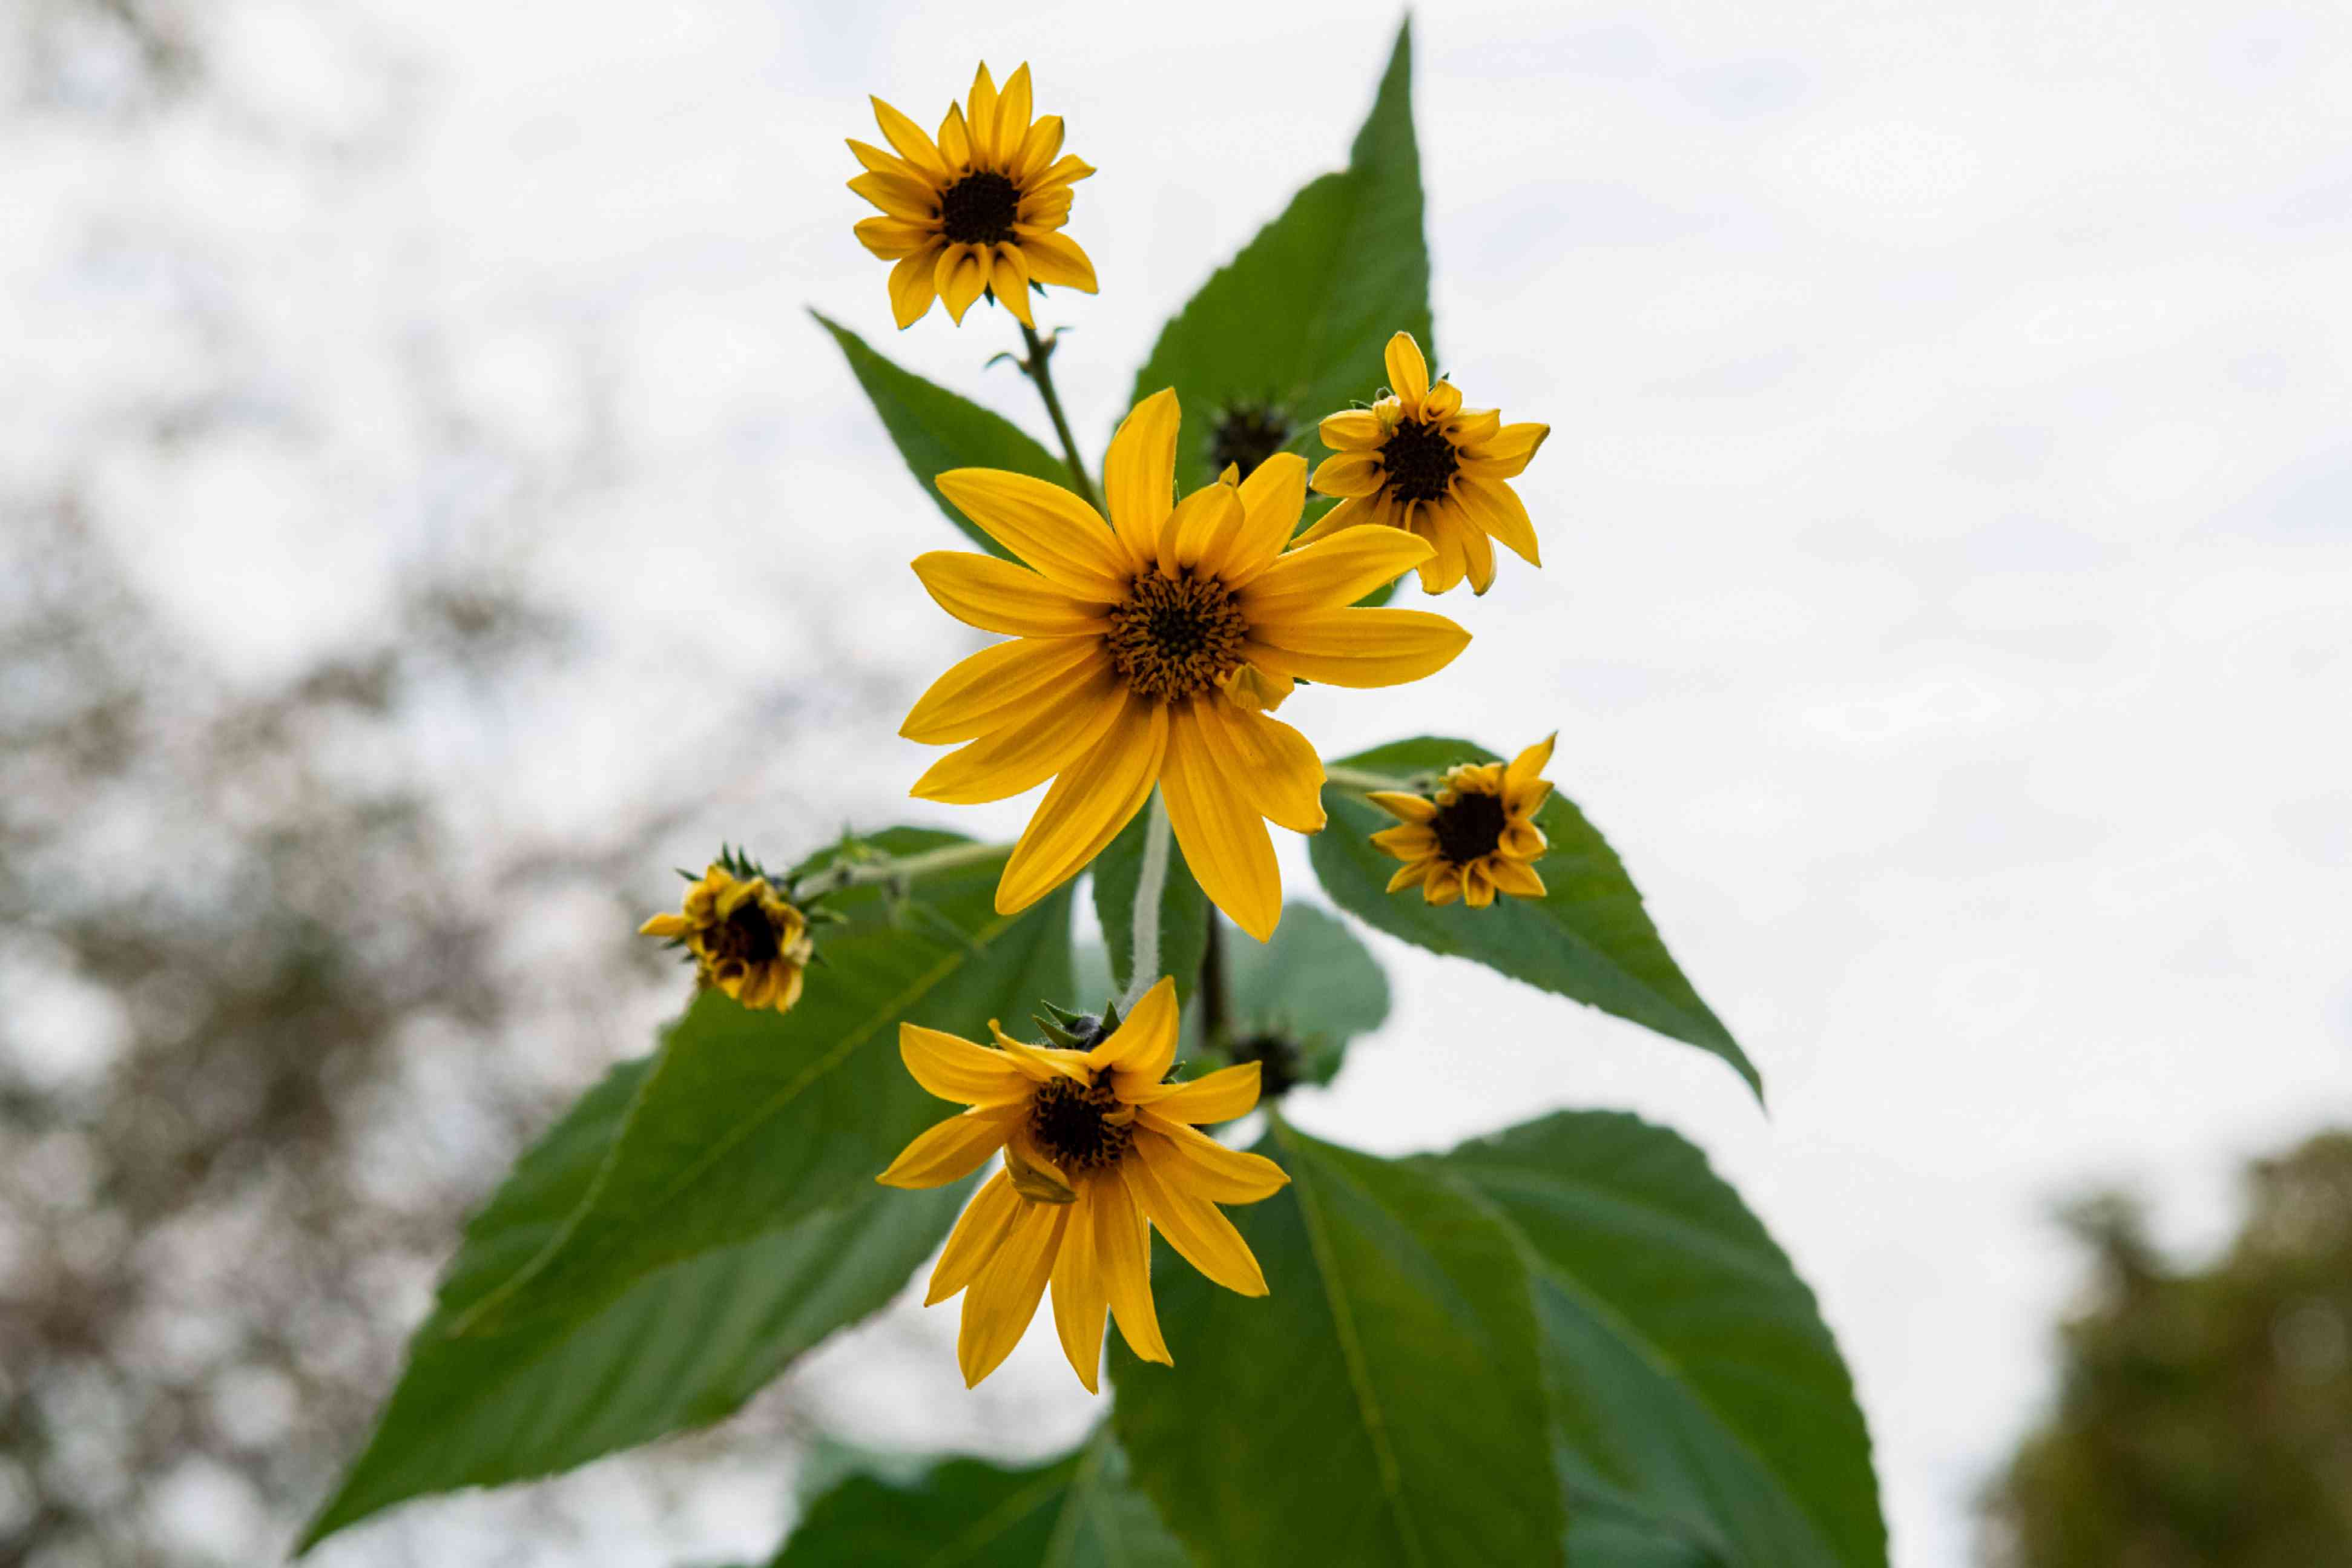 Jerusalem artichoke plant with tall yellow flowers on single stalk with leaves